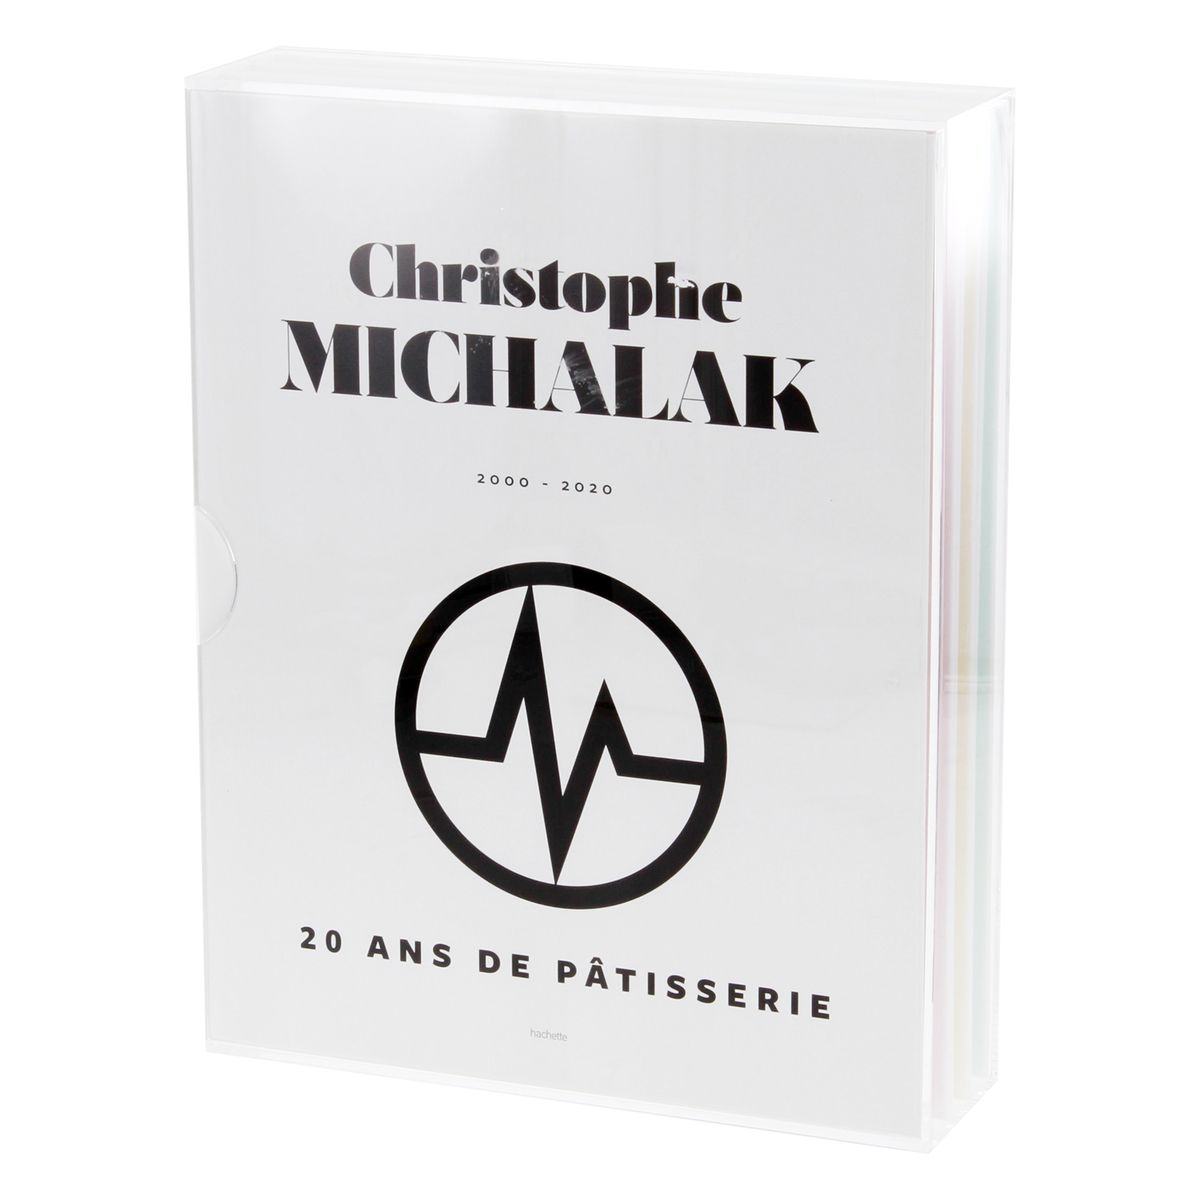 20 ans de patisserie by Michalak - Hachette Pratique